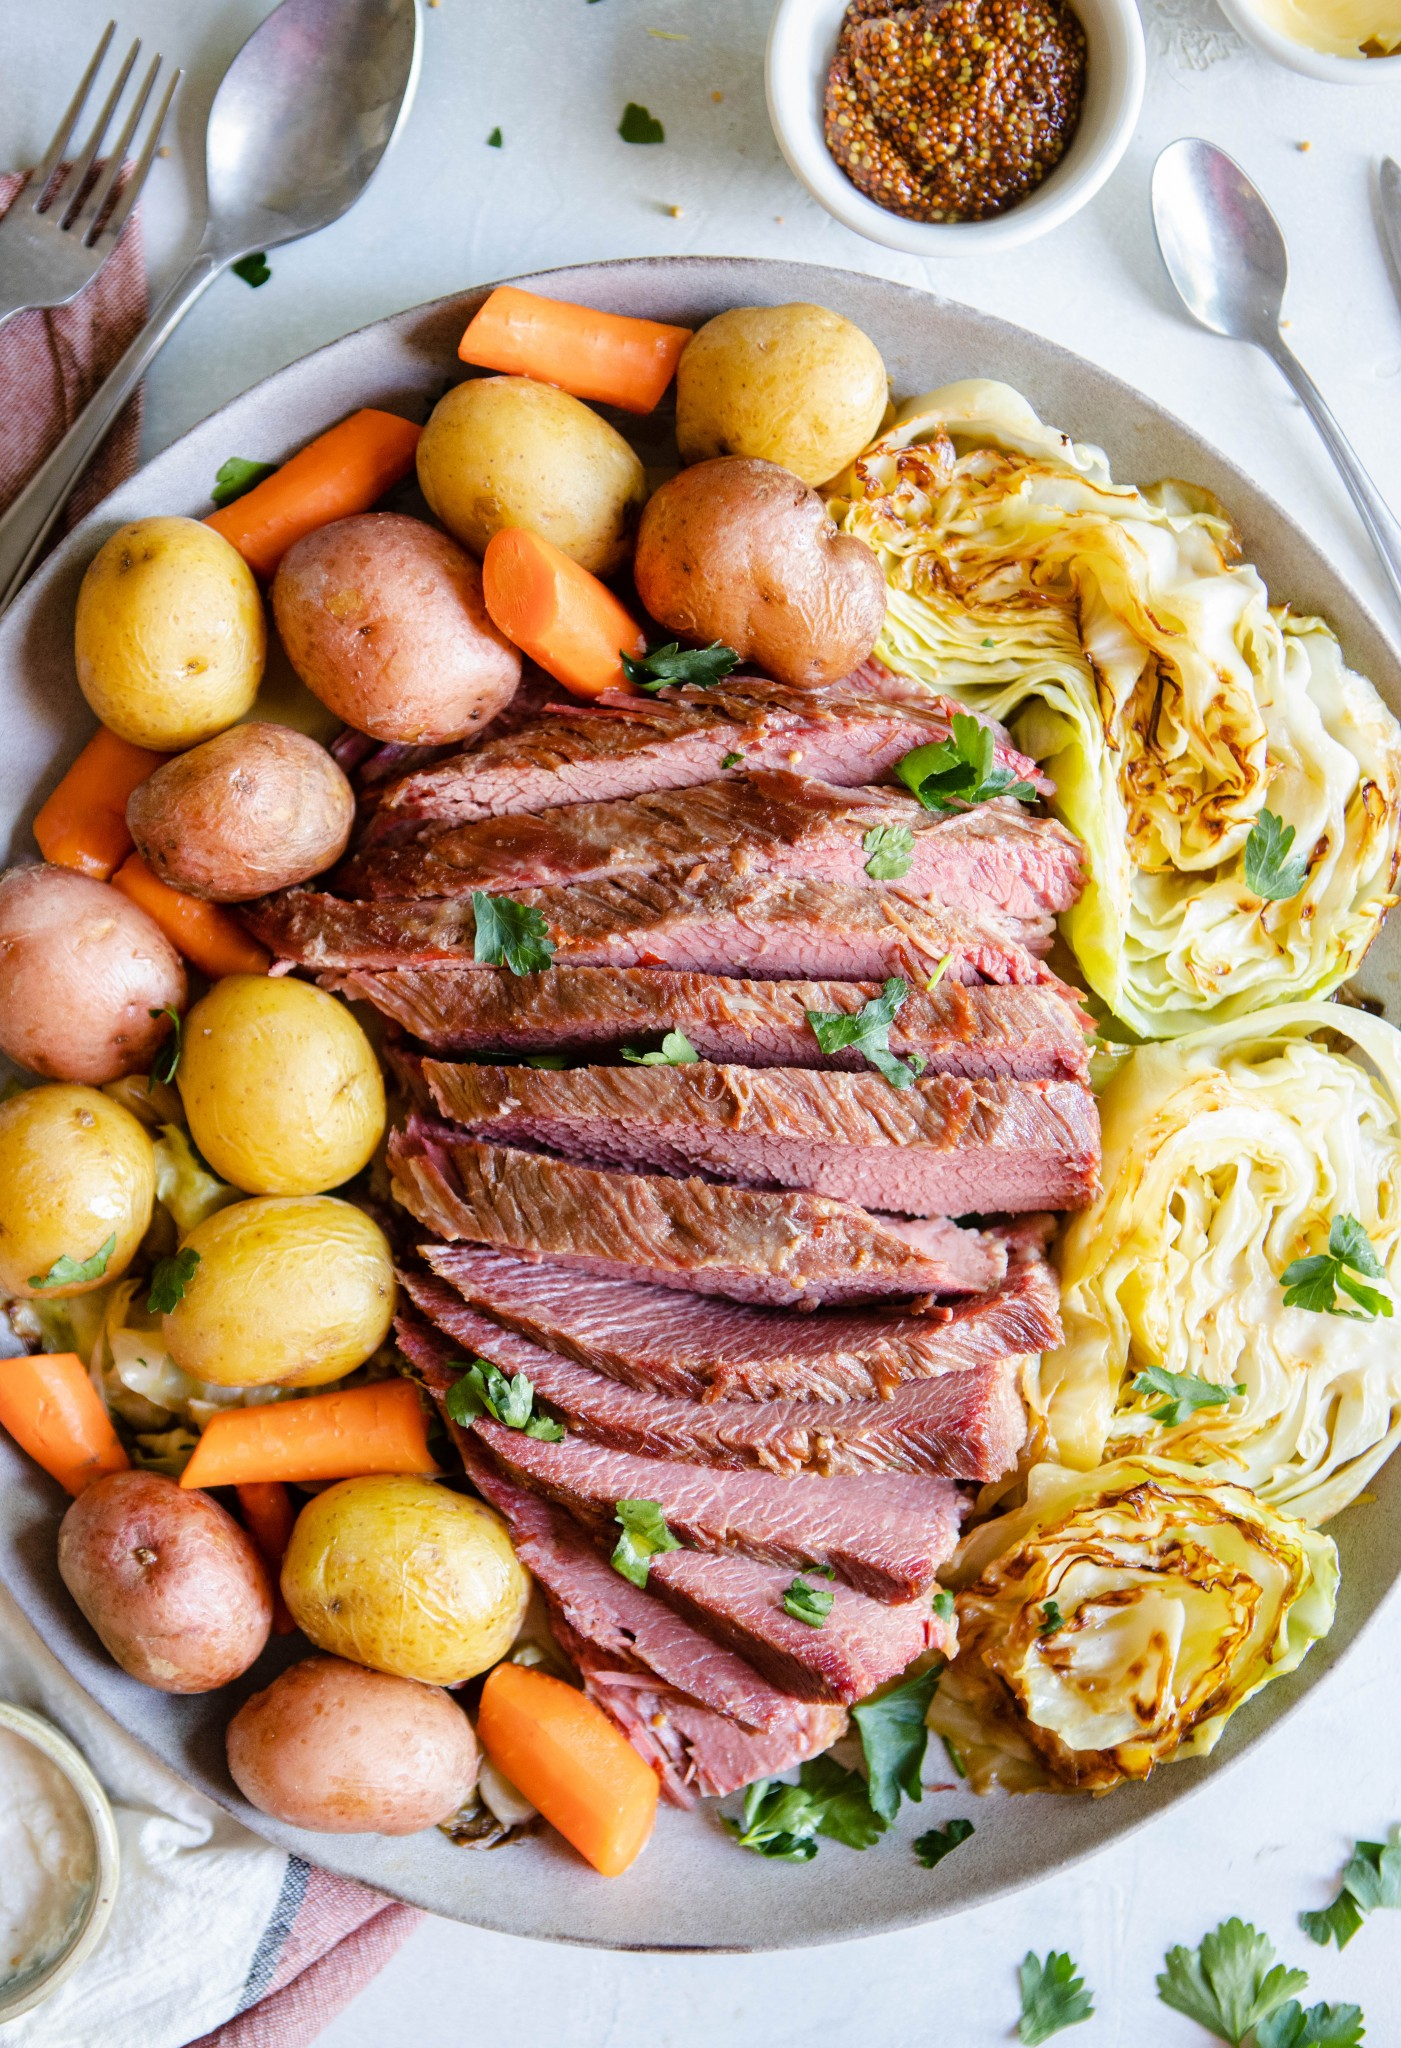 beef brisket sliced with potatoes and cabbage